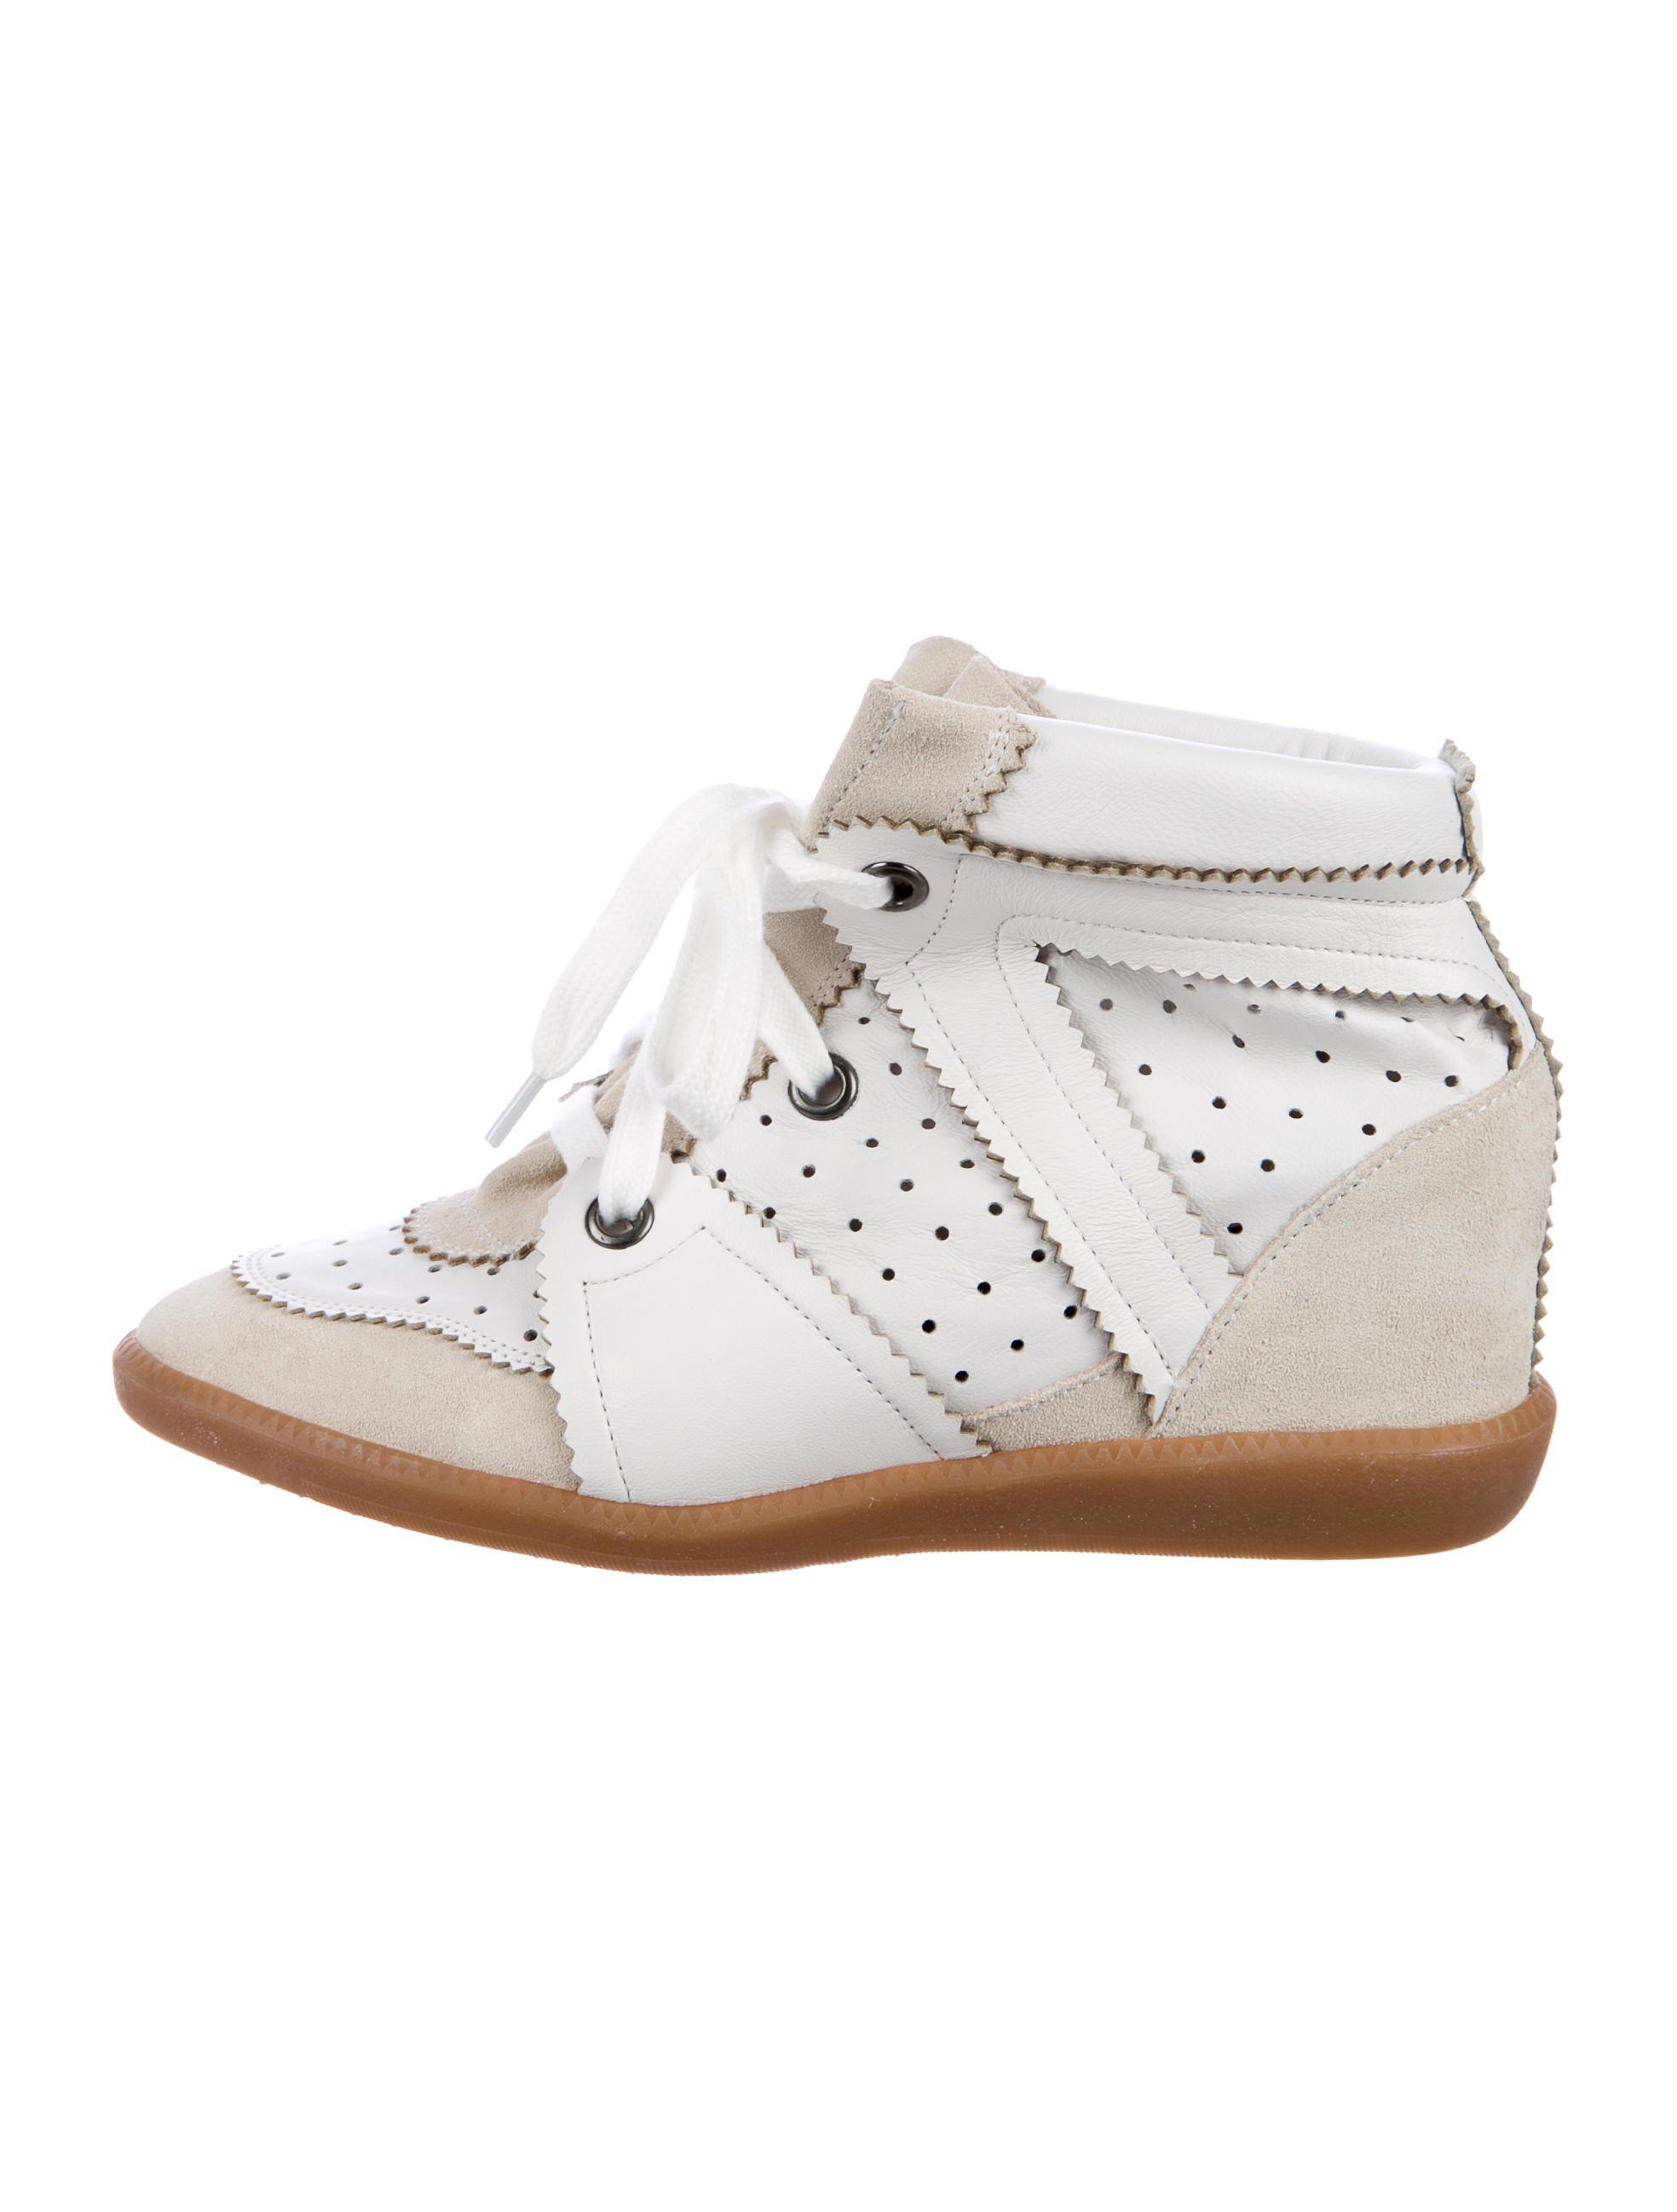 31fede43726 Lyst - Isabel Marant Betty Wedge Sneakers Neutrals in Natural